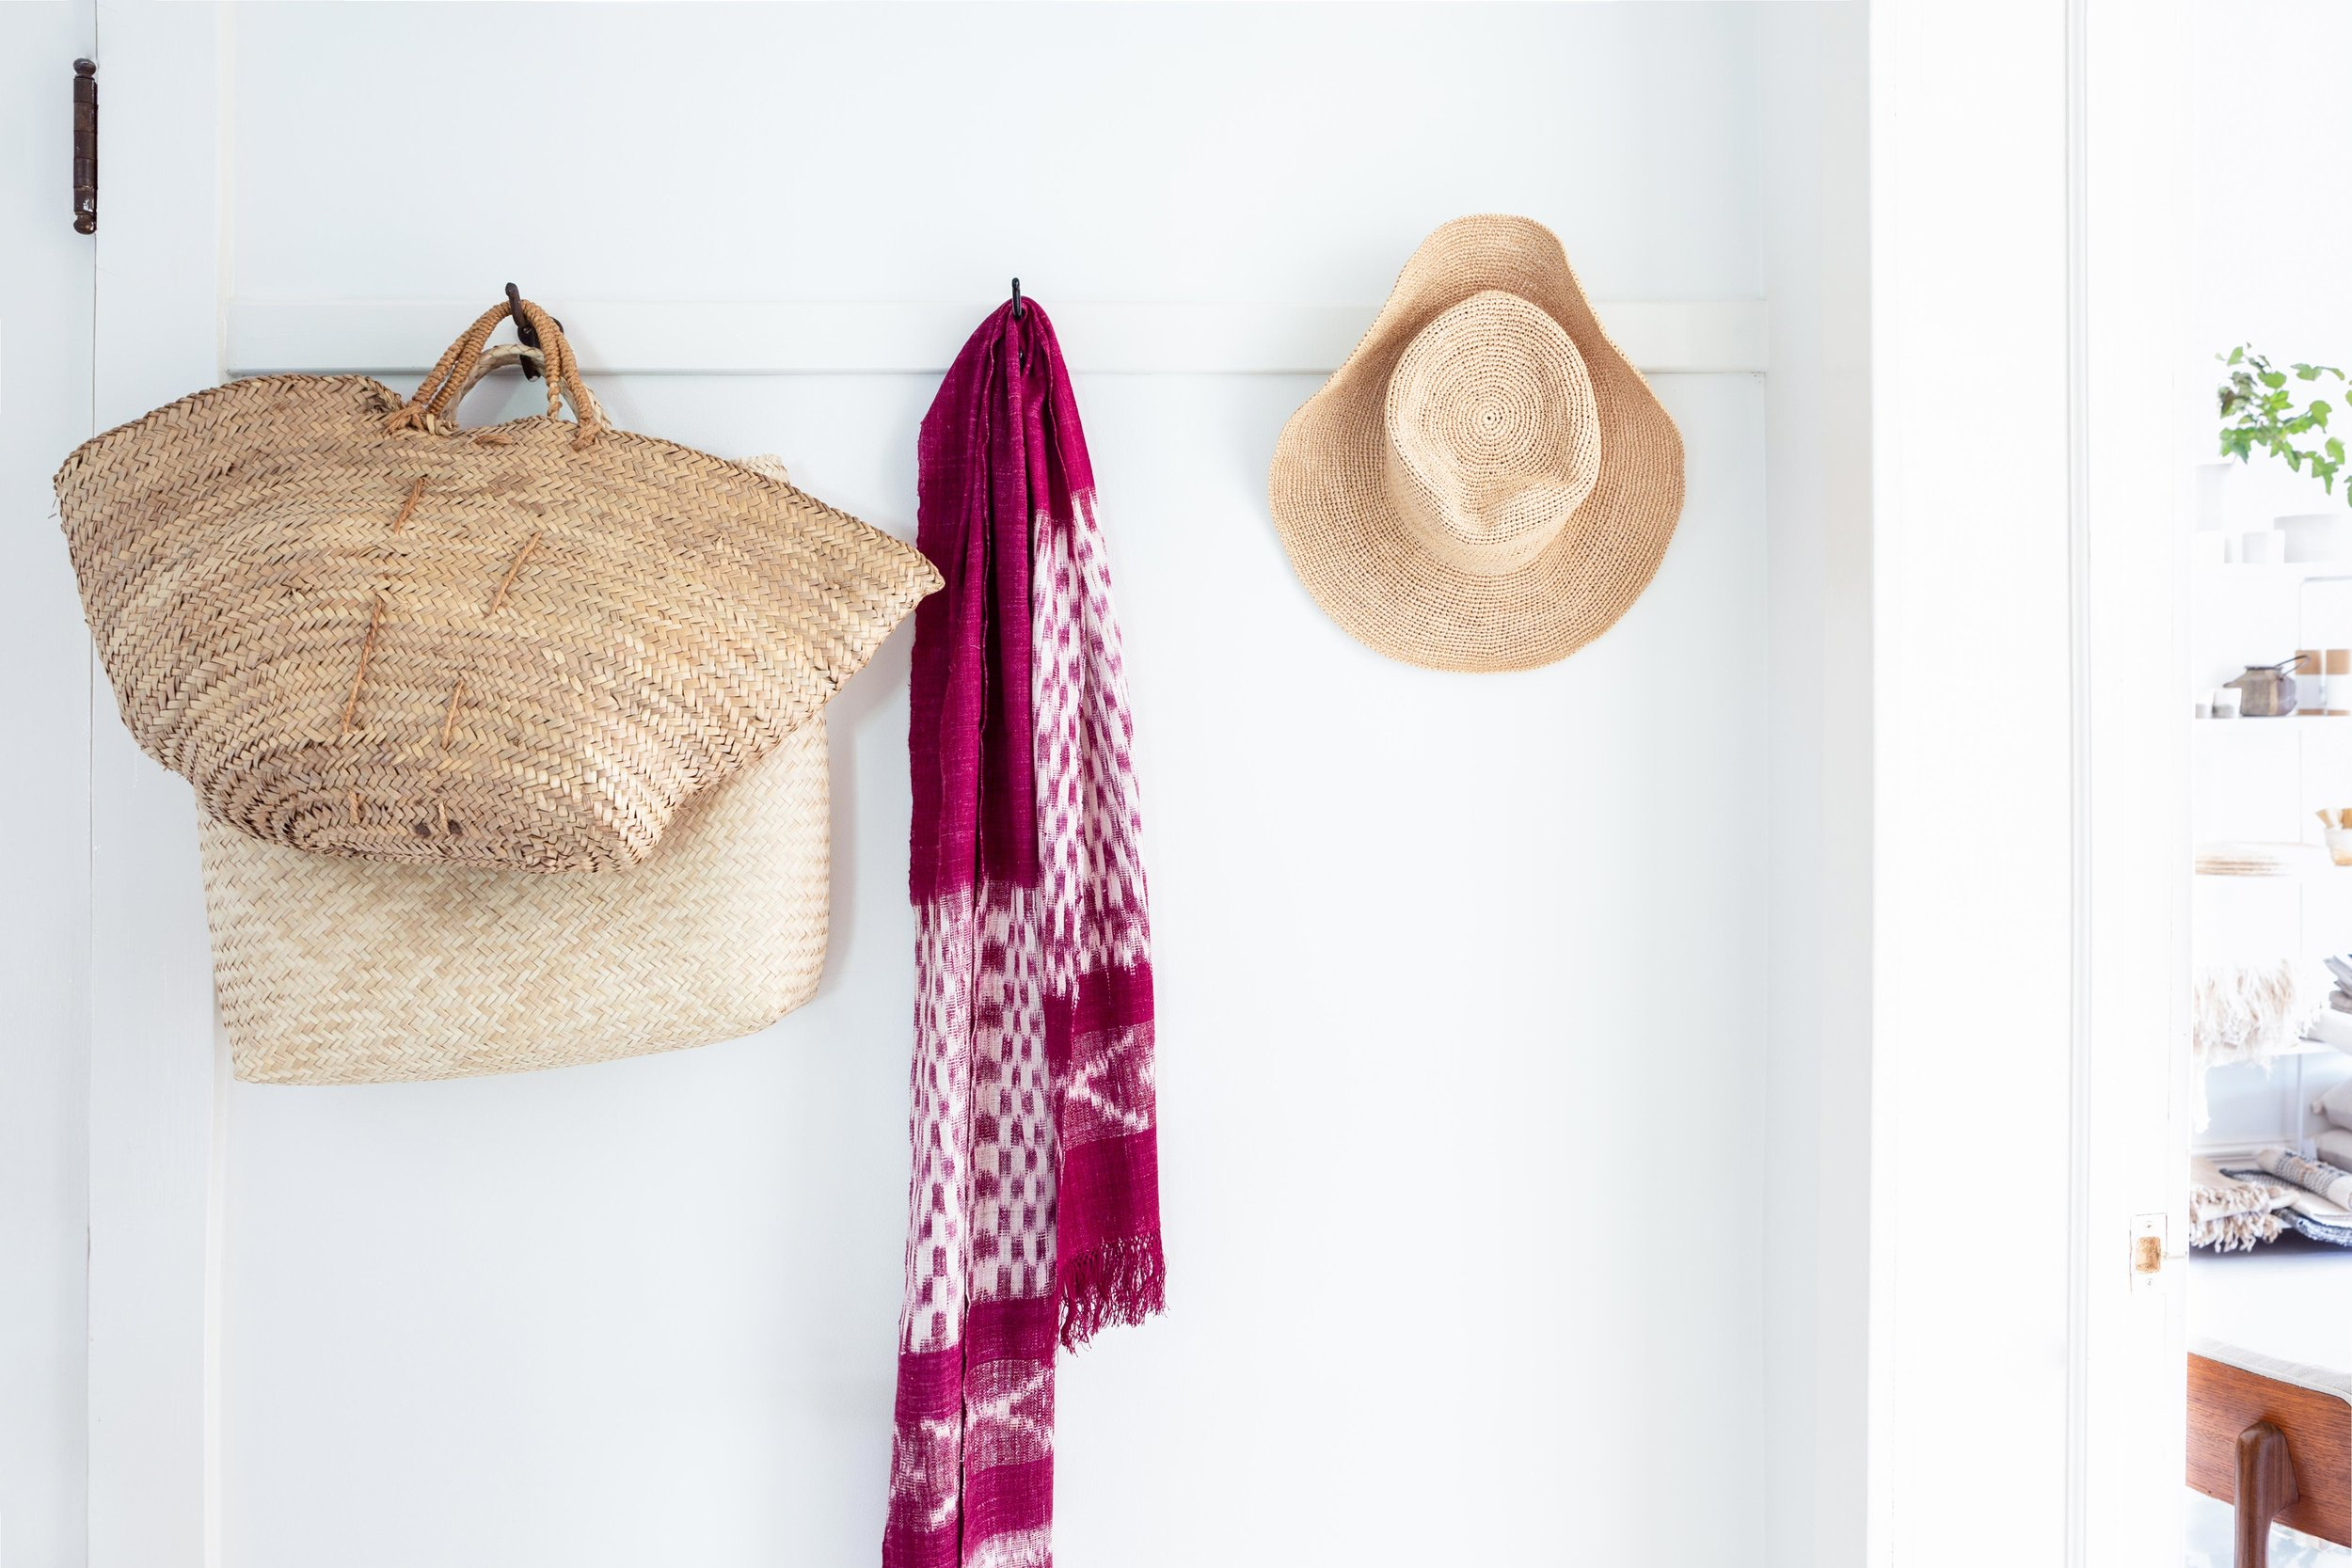 Big handwoven bags, an artisan-crafted sun hat, a lightweight wool scarf: just a few things guests might need for the beaches and streets of Lakeside, Michigan.